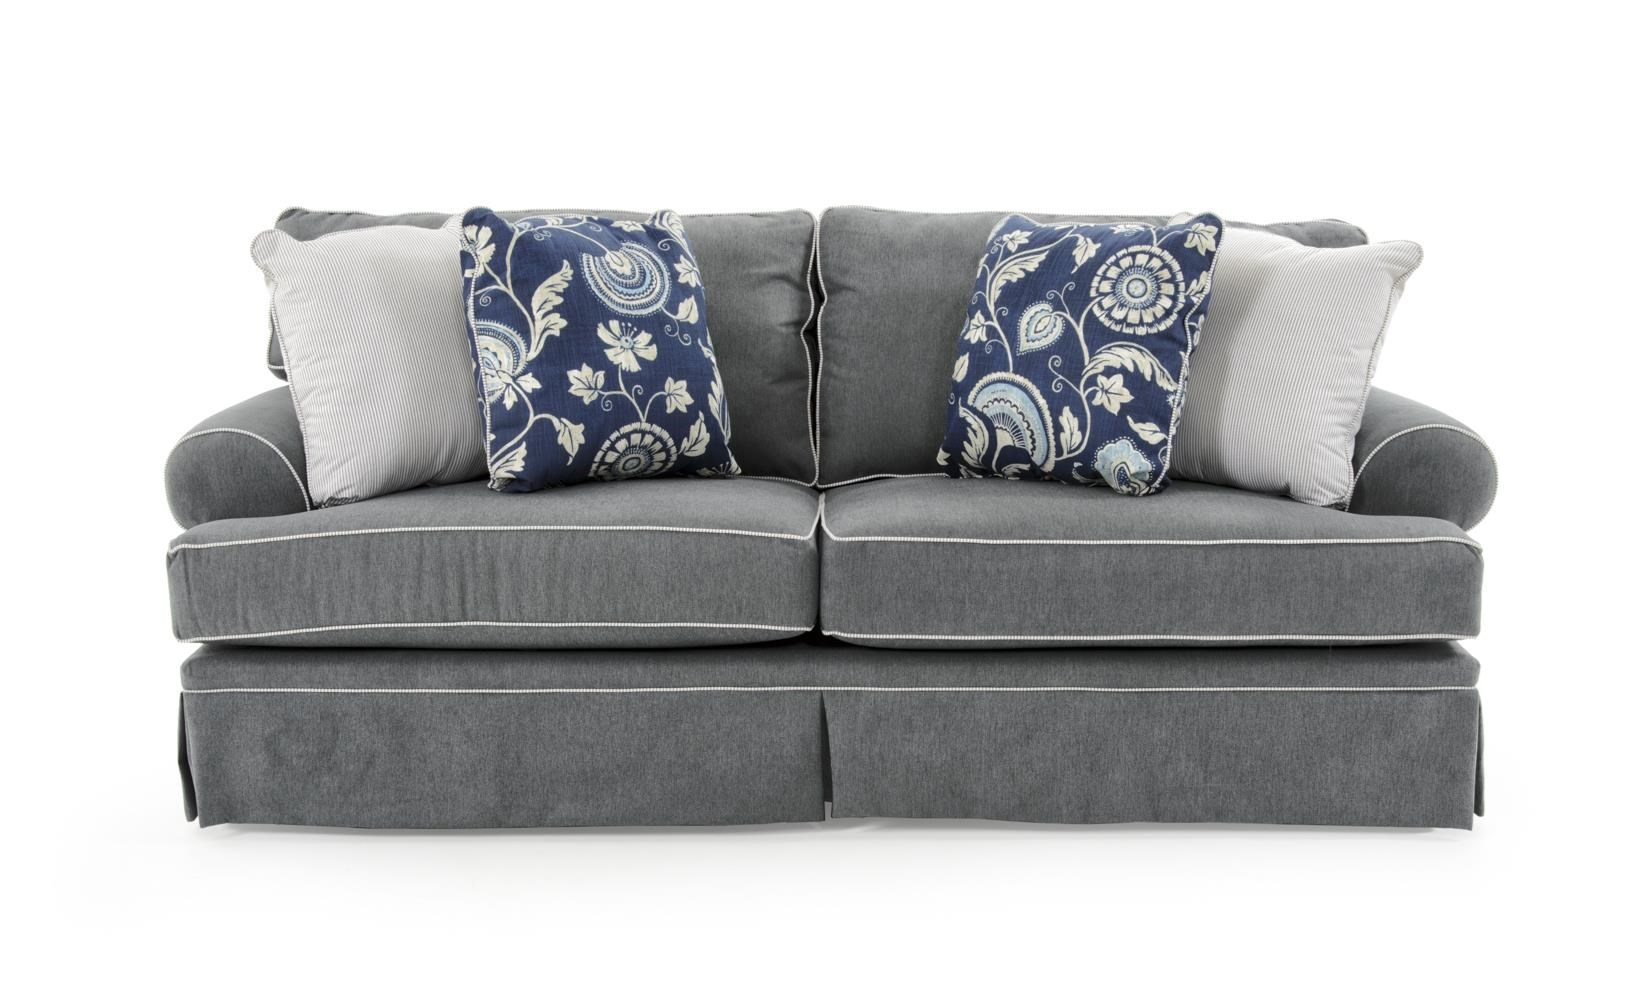 Charmant Broyhill Furniture EmilyCasual Style Sofa ...